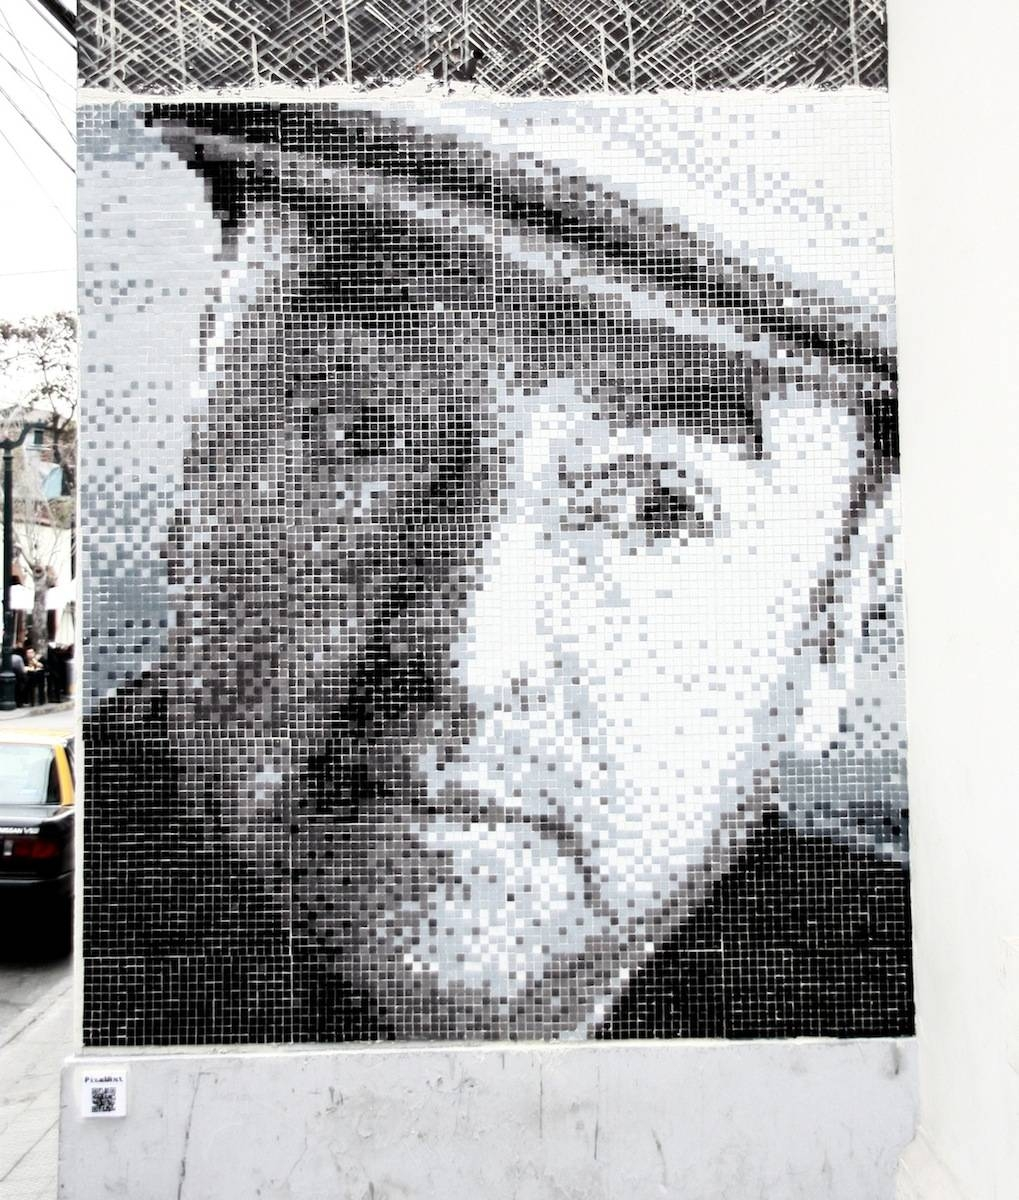 Pixel | Mosaic Art Now Within Most Popular Pixel Mosaic Wall Art (View 11 of 20)